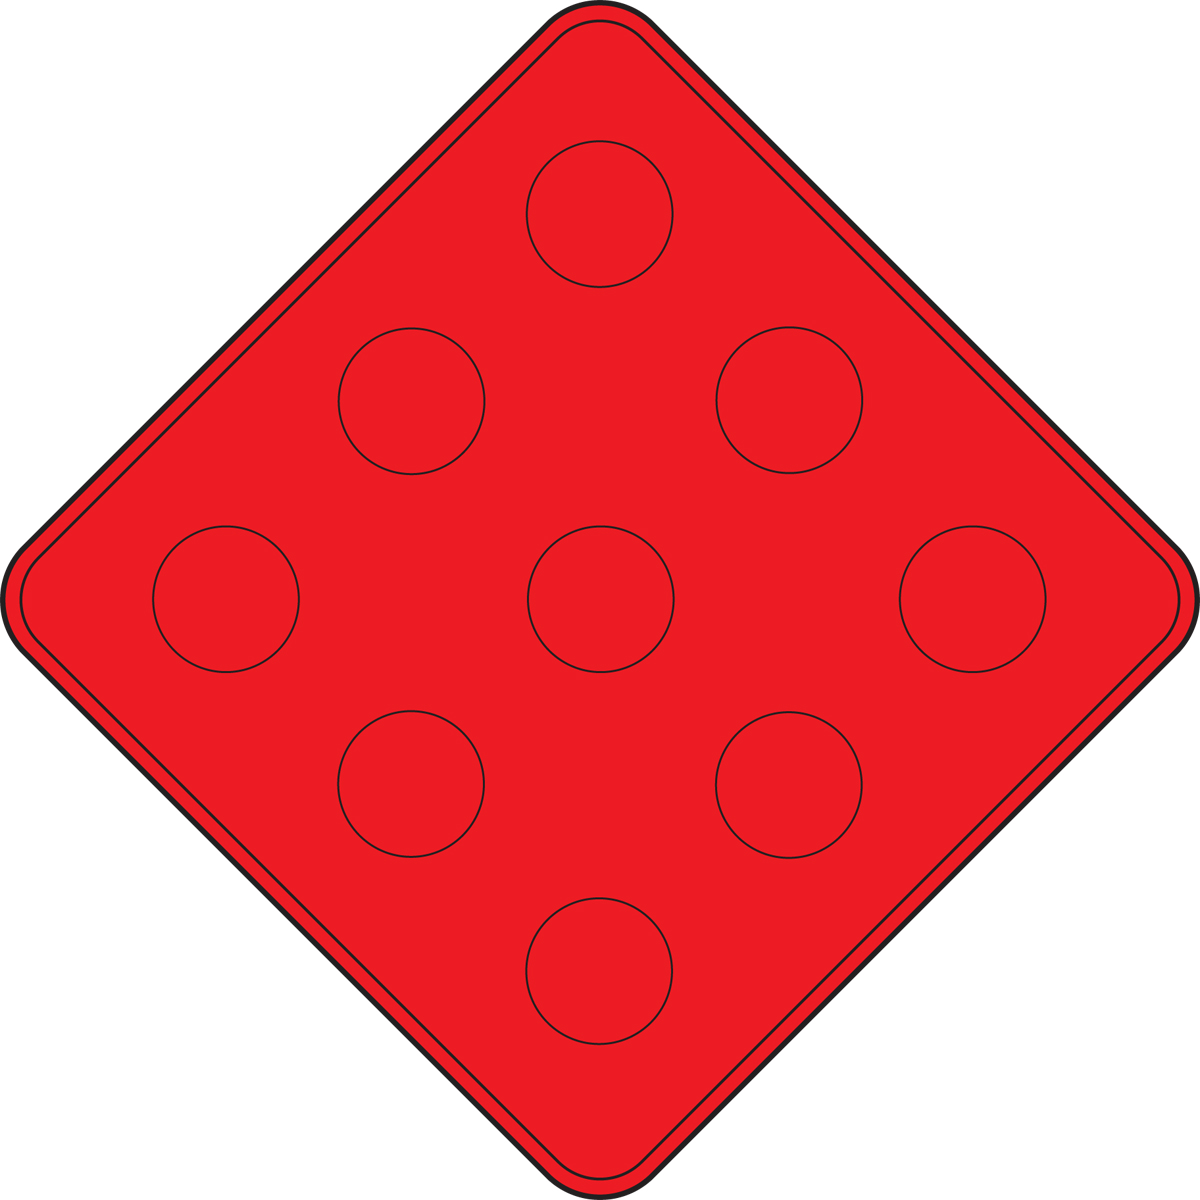 (TYPE 4 OBJECT MARKER – END OF ROADWAY)